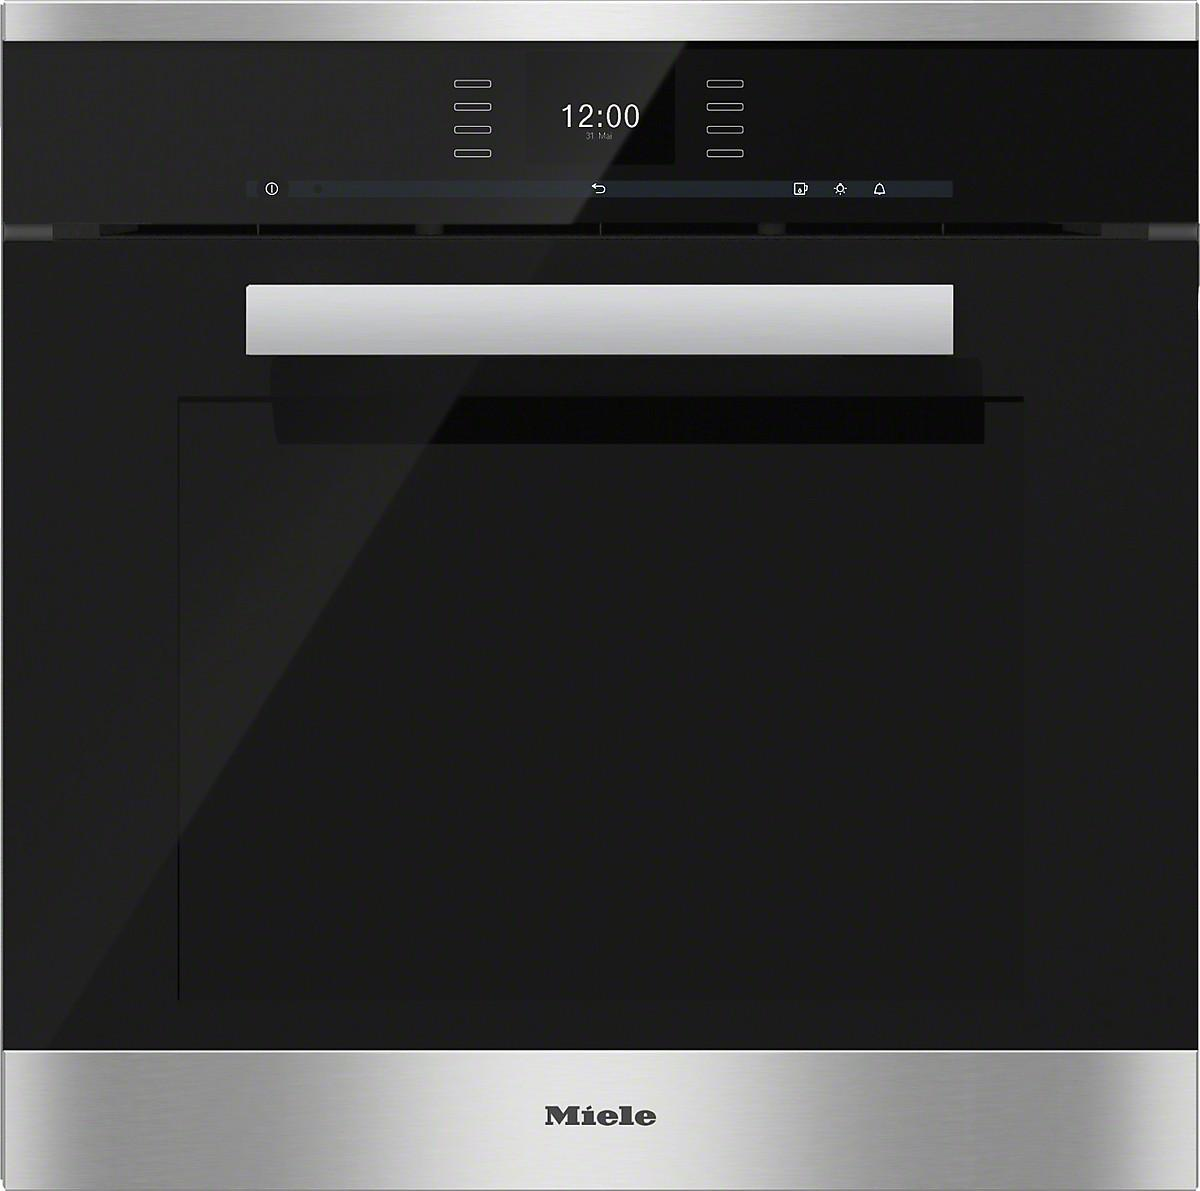 Four miele vapeur dgcxxl6660in electromenager grossiste - Table a repasser miele ...